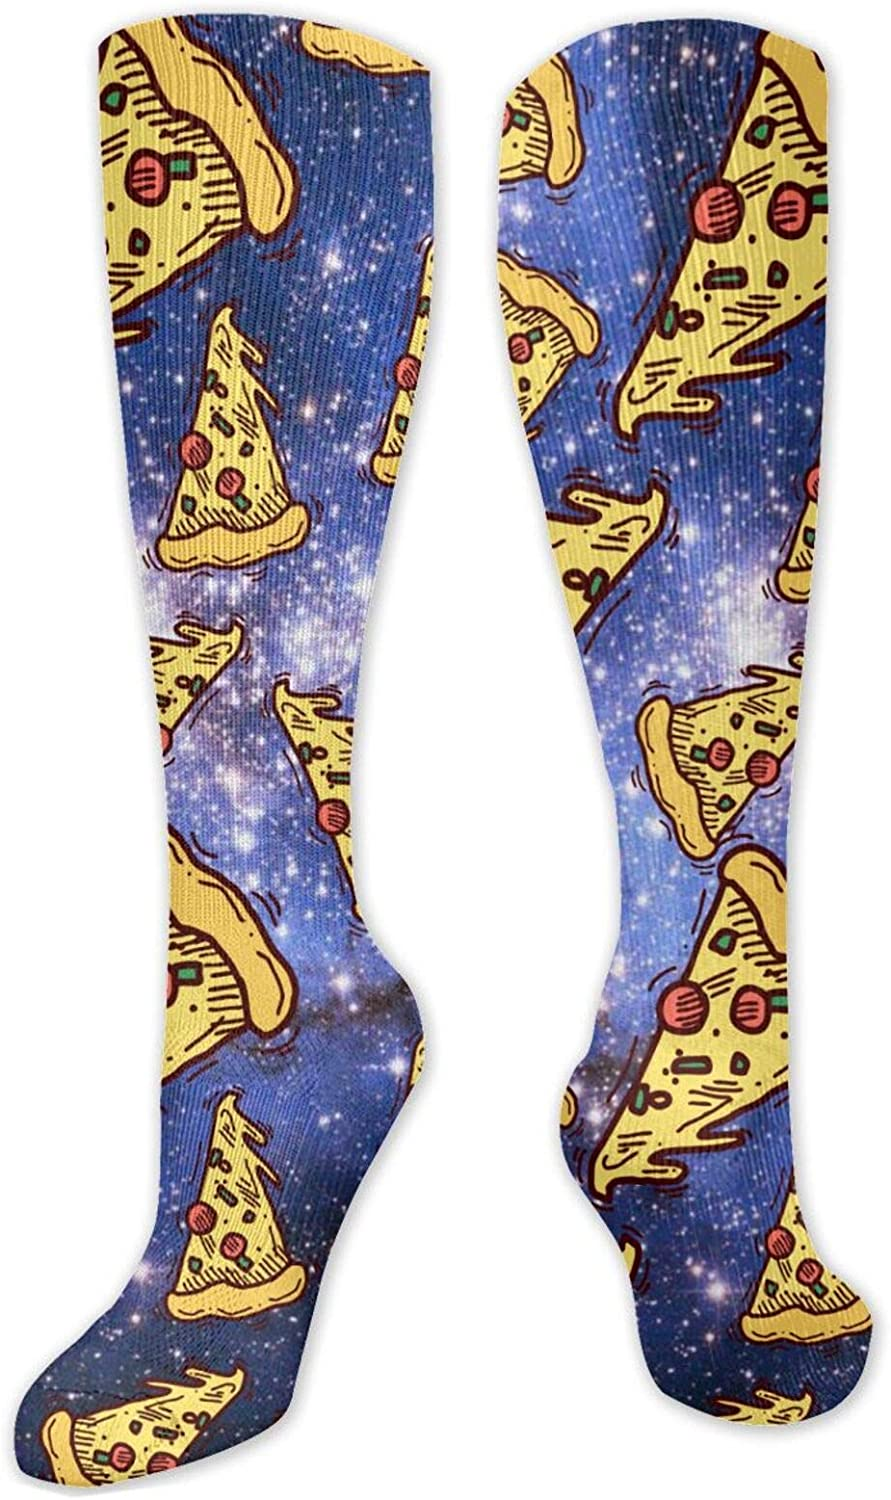 NiYoung Unisex Comfortable Athletic Socks Funny Funky Novelty Socks Over The Calf Tube Socks for Running, Athletic, Pregnancy and Travel (Pizza in Space Cool)